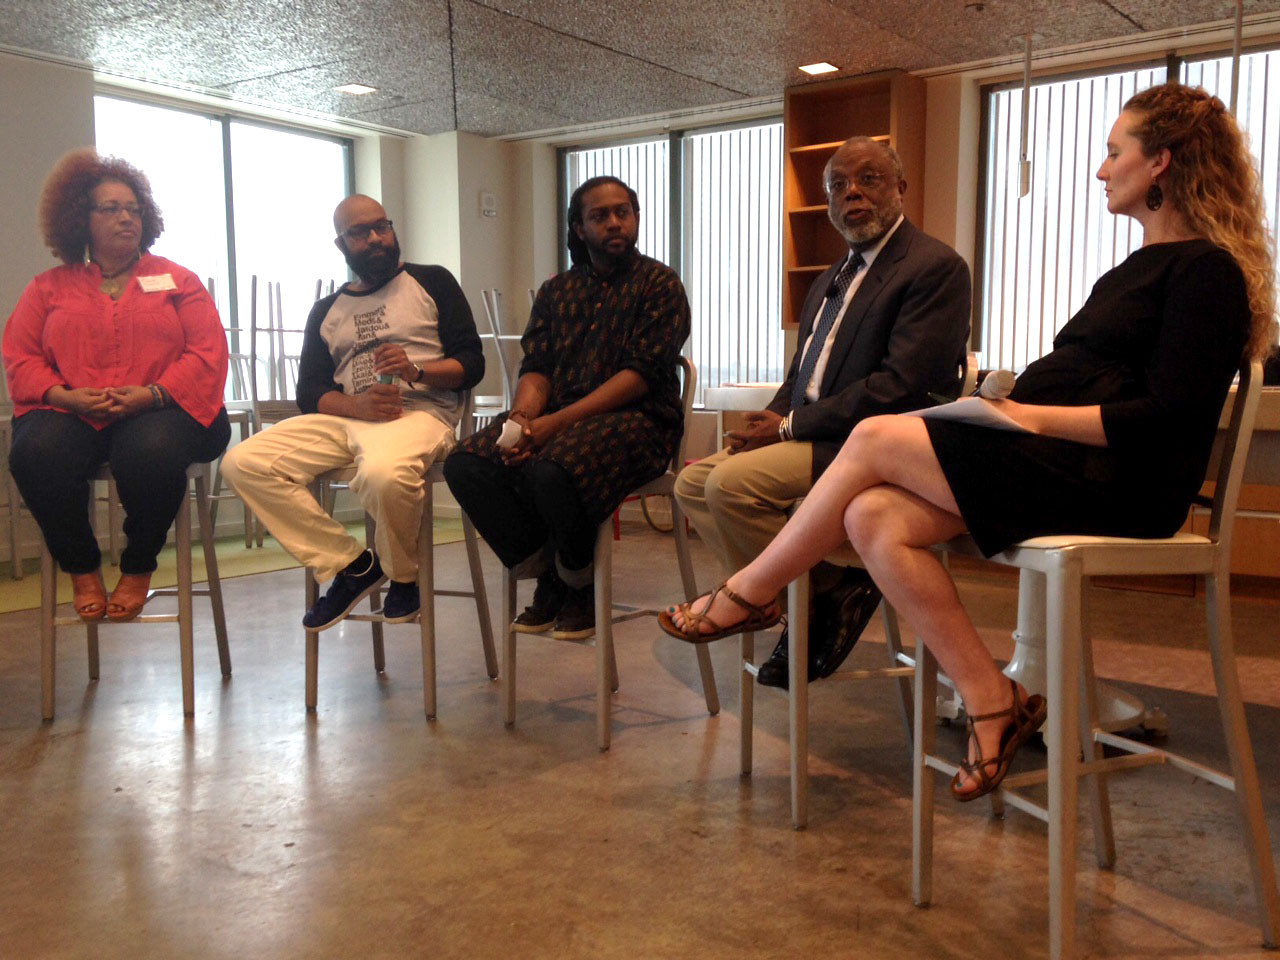 Panelists Susan Owusu, Jabari Asim, Terry Marshall, Ted Landsmark, and Laura Amico